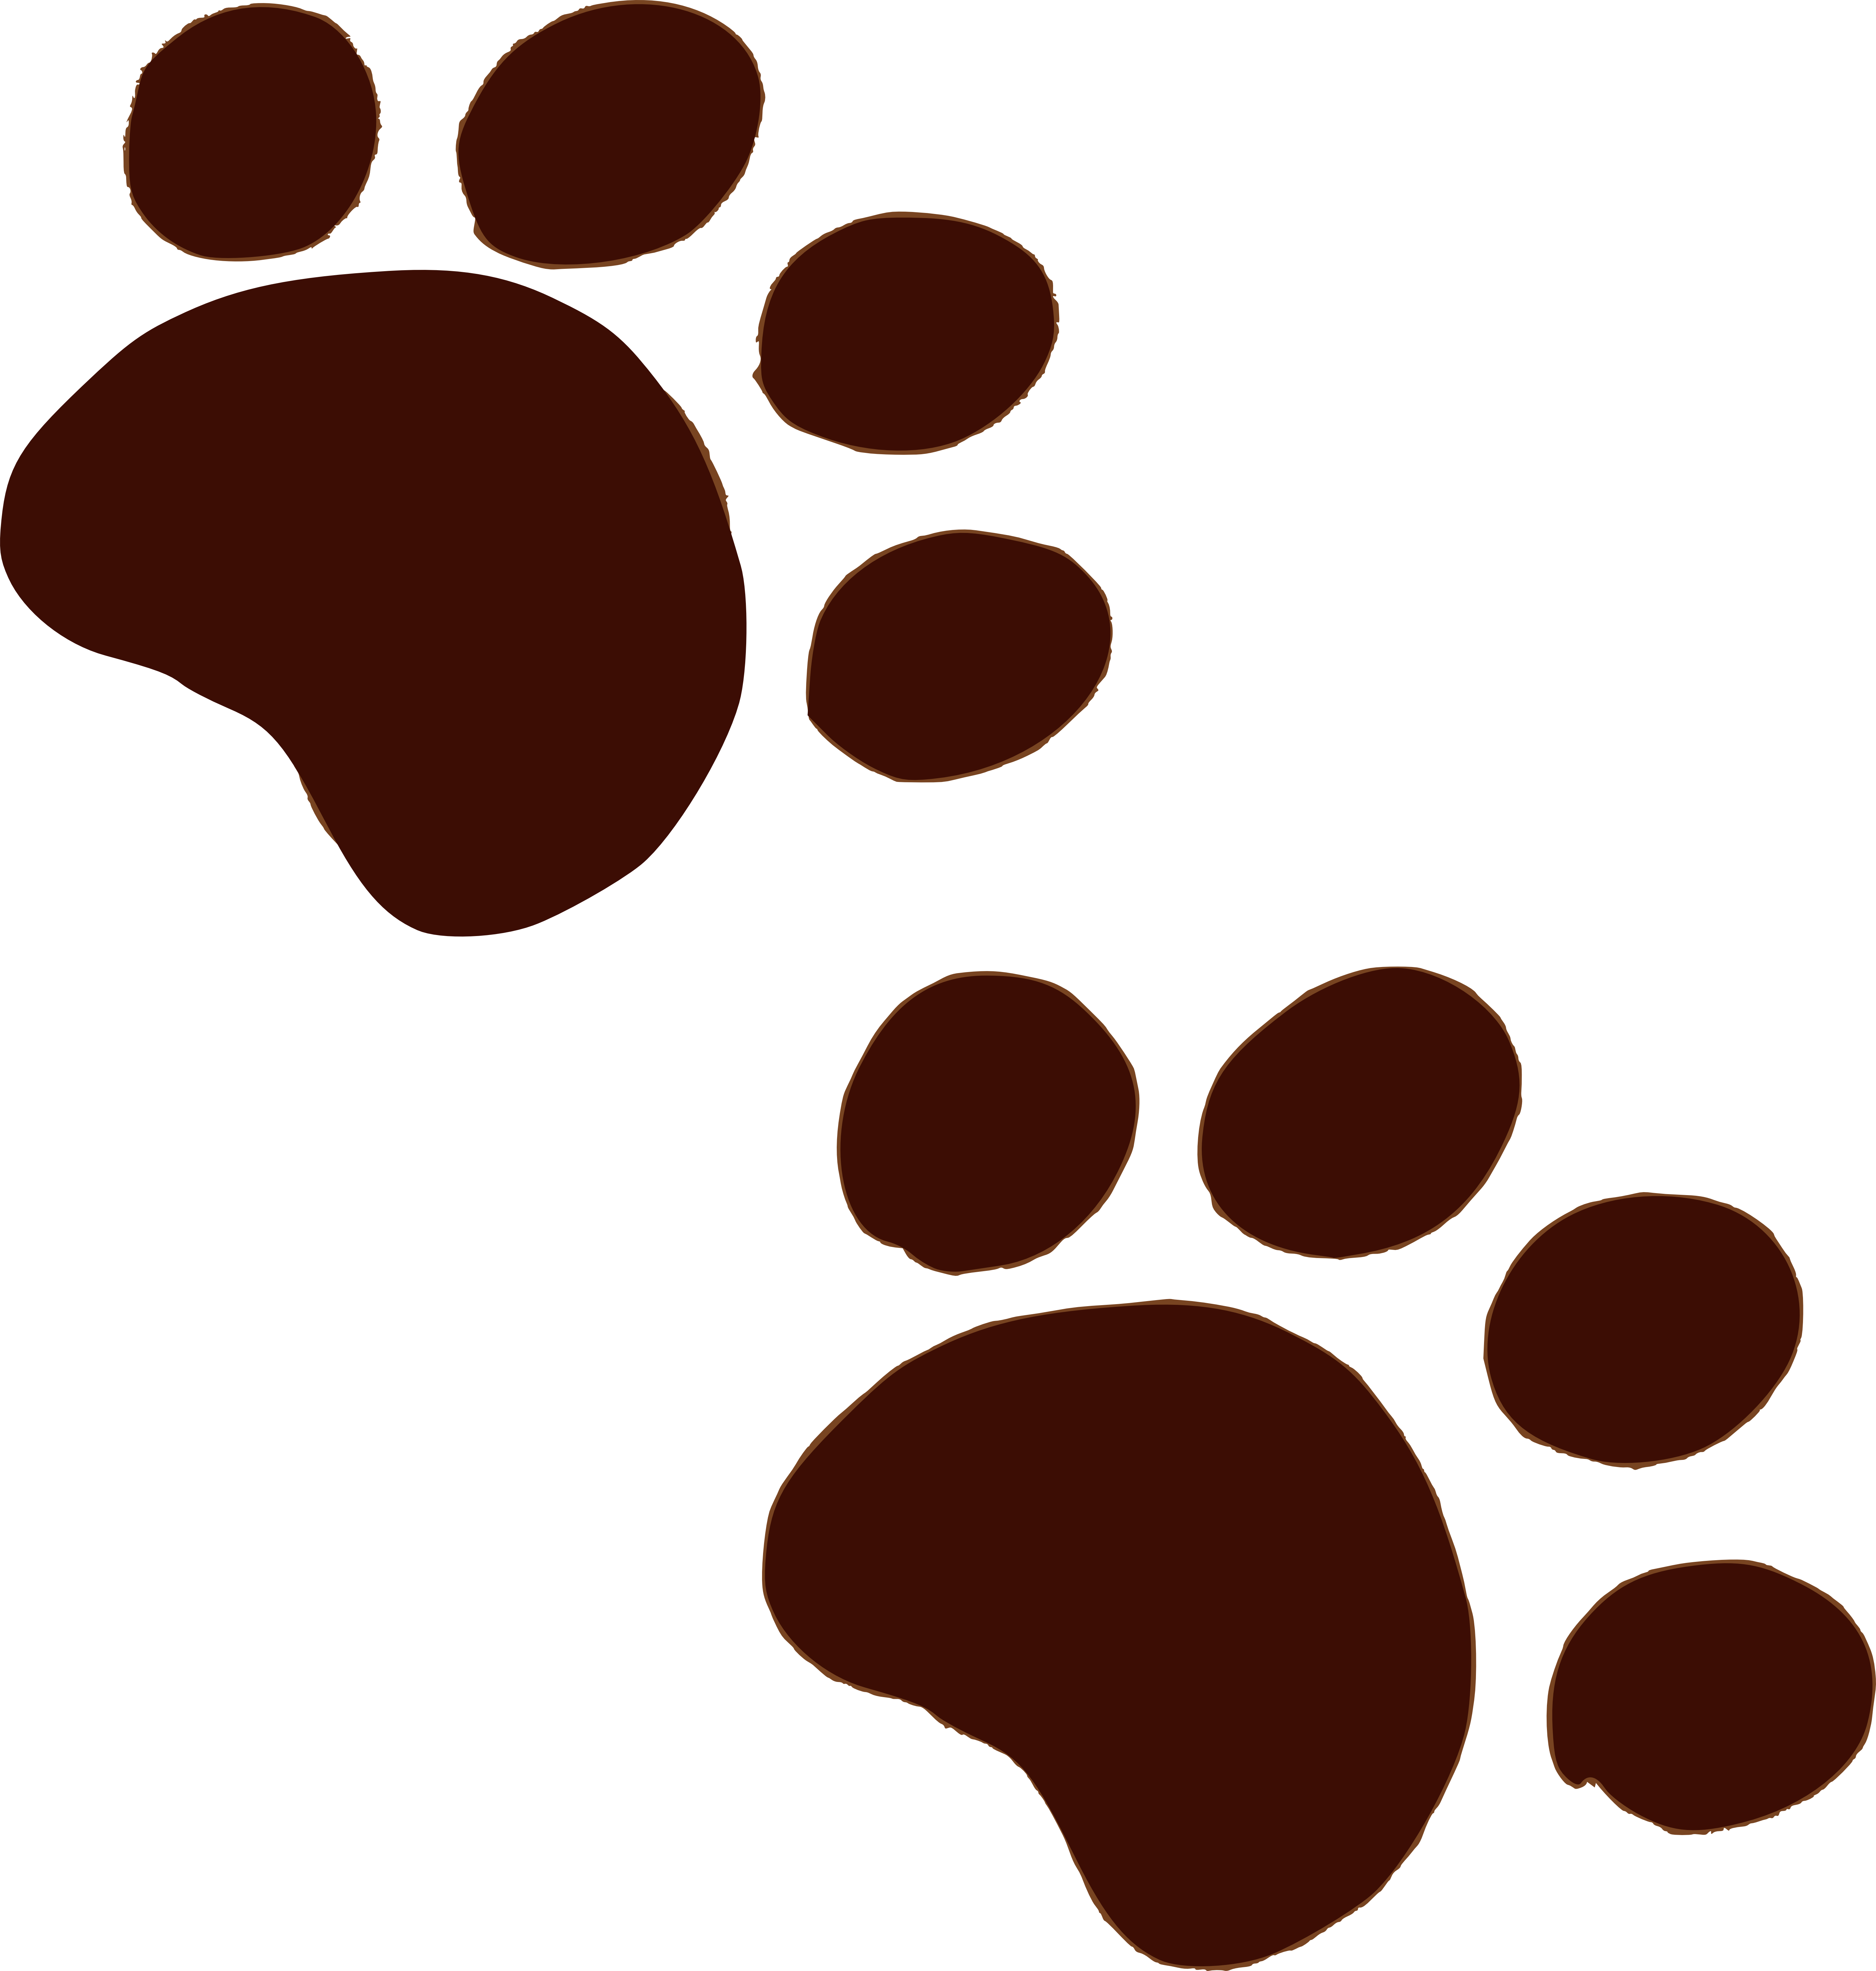 Paws clipart lovable. The muddy bunch paw